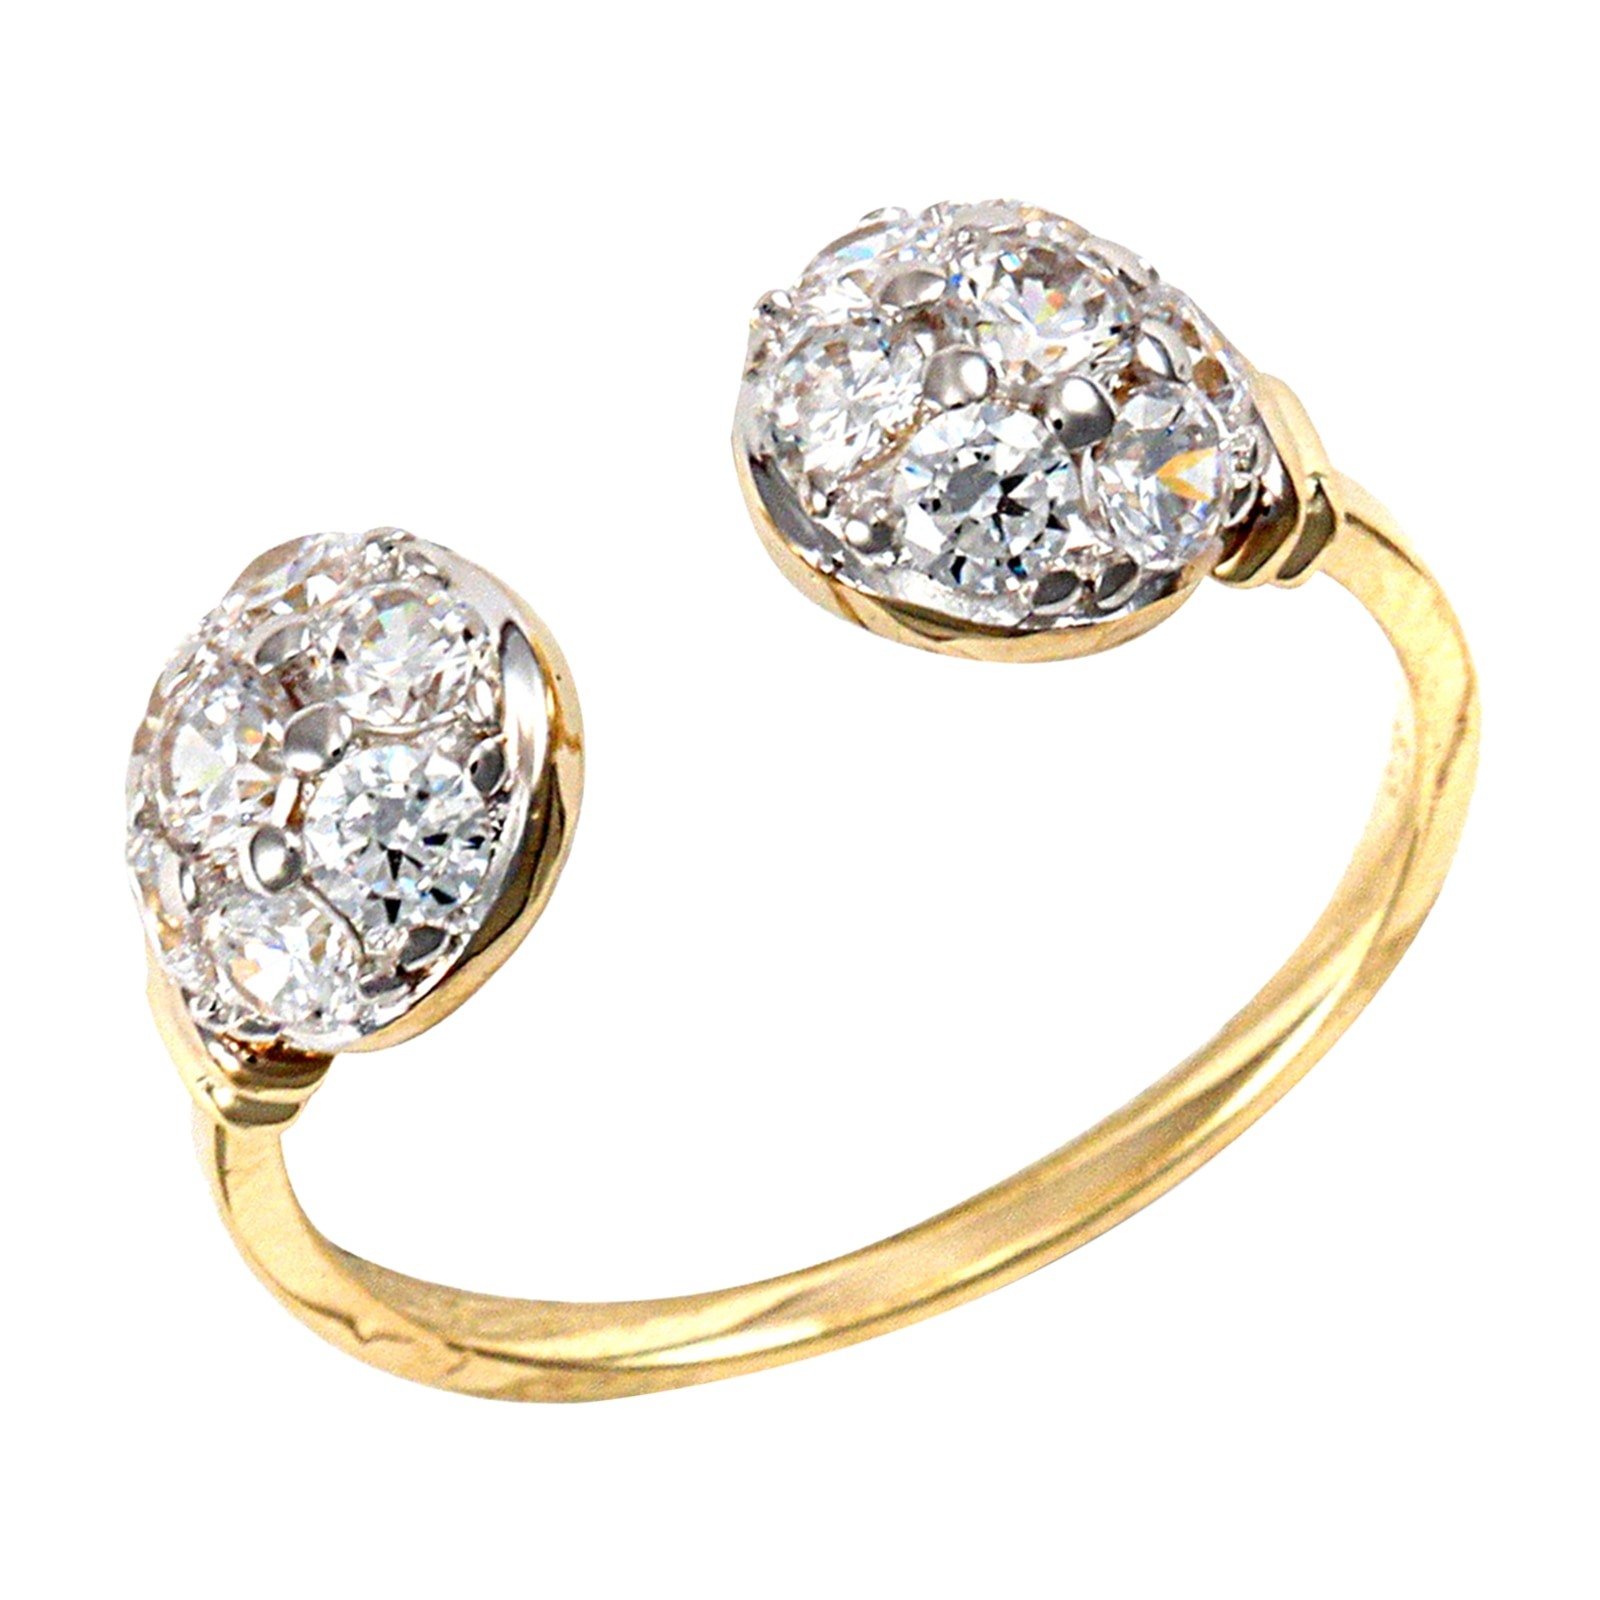 Details about  /9ct Yellow Gold Infinity Cubic Zirconia Twist Ring